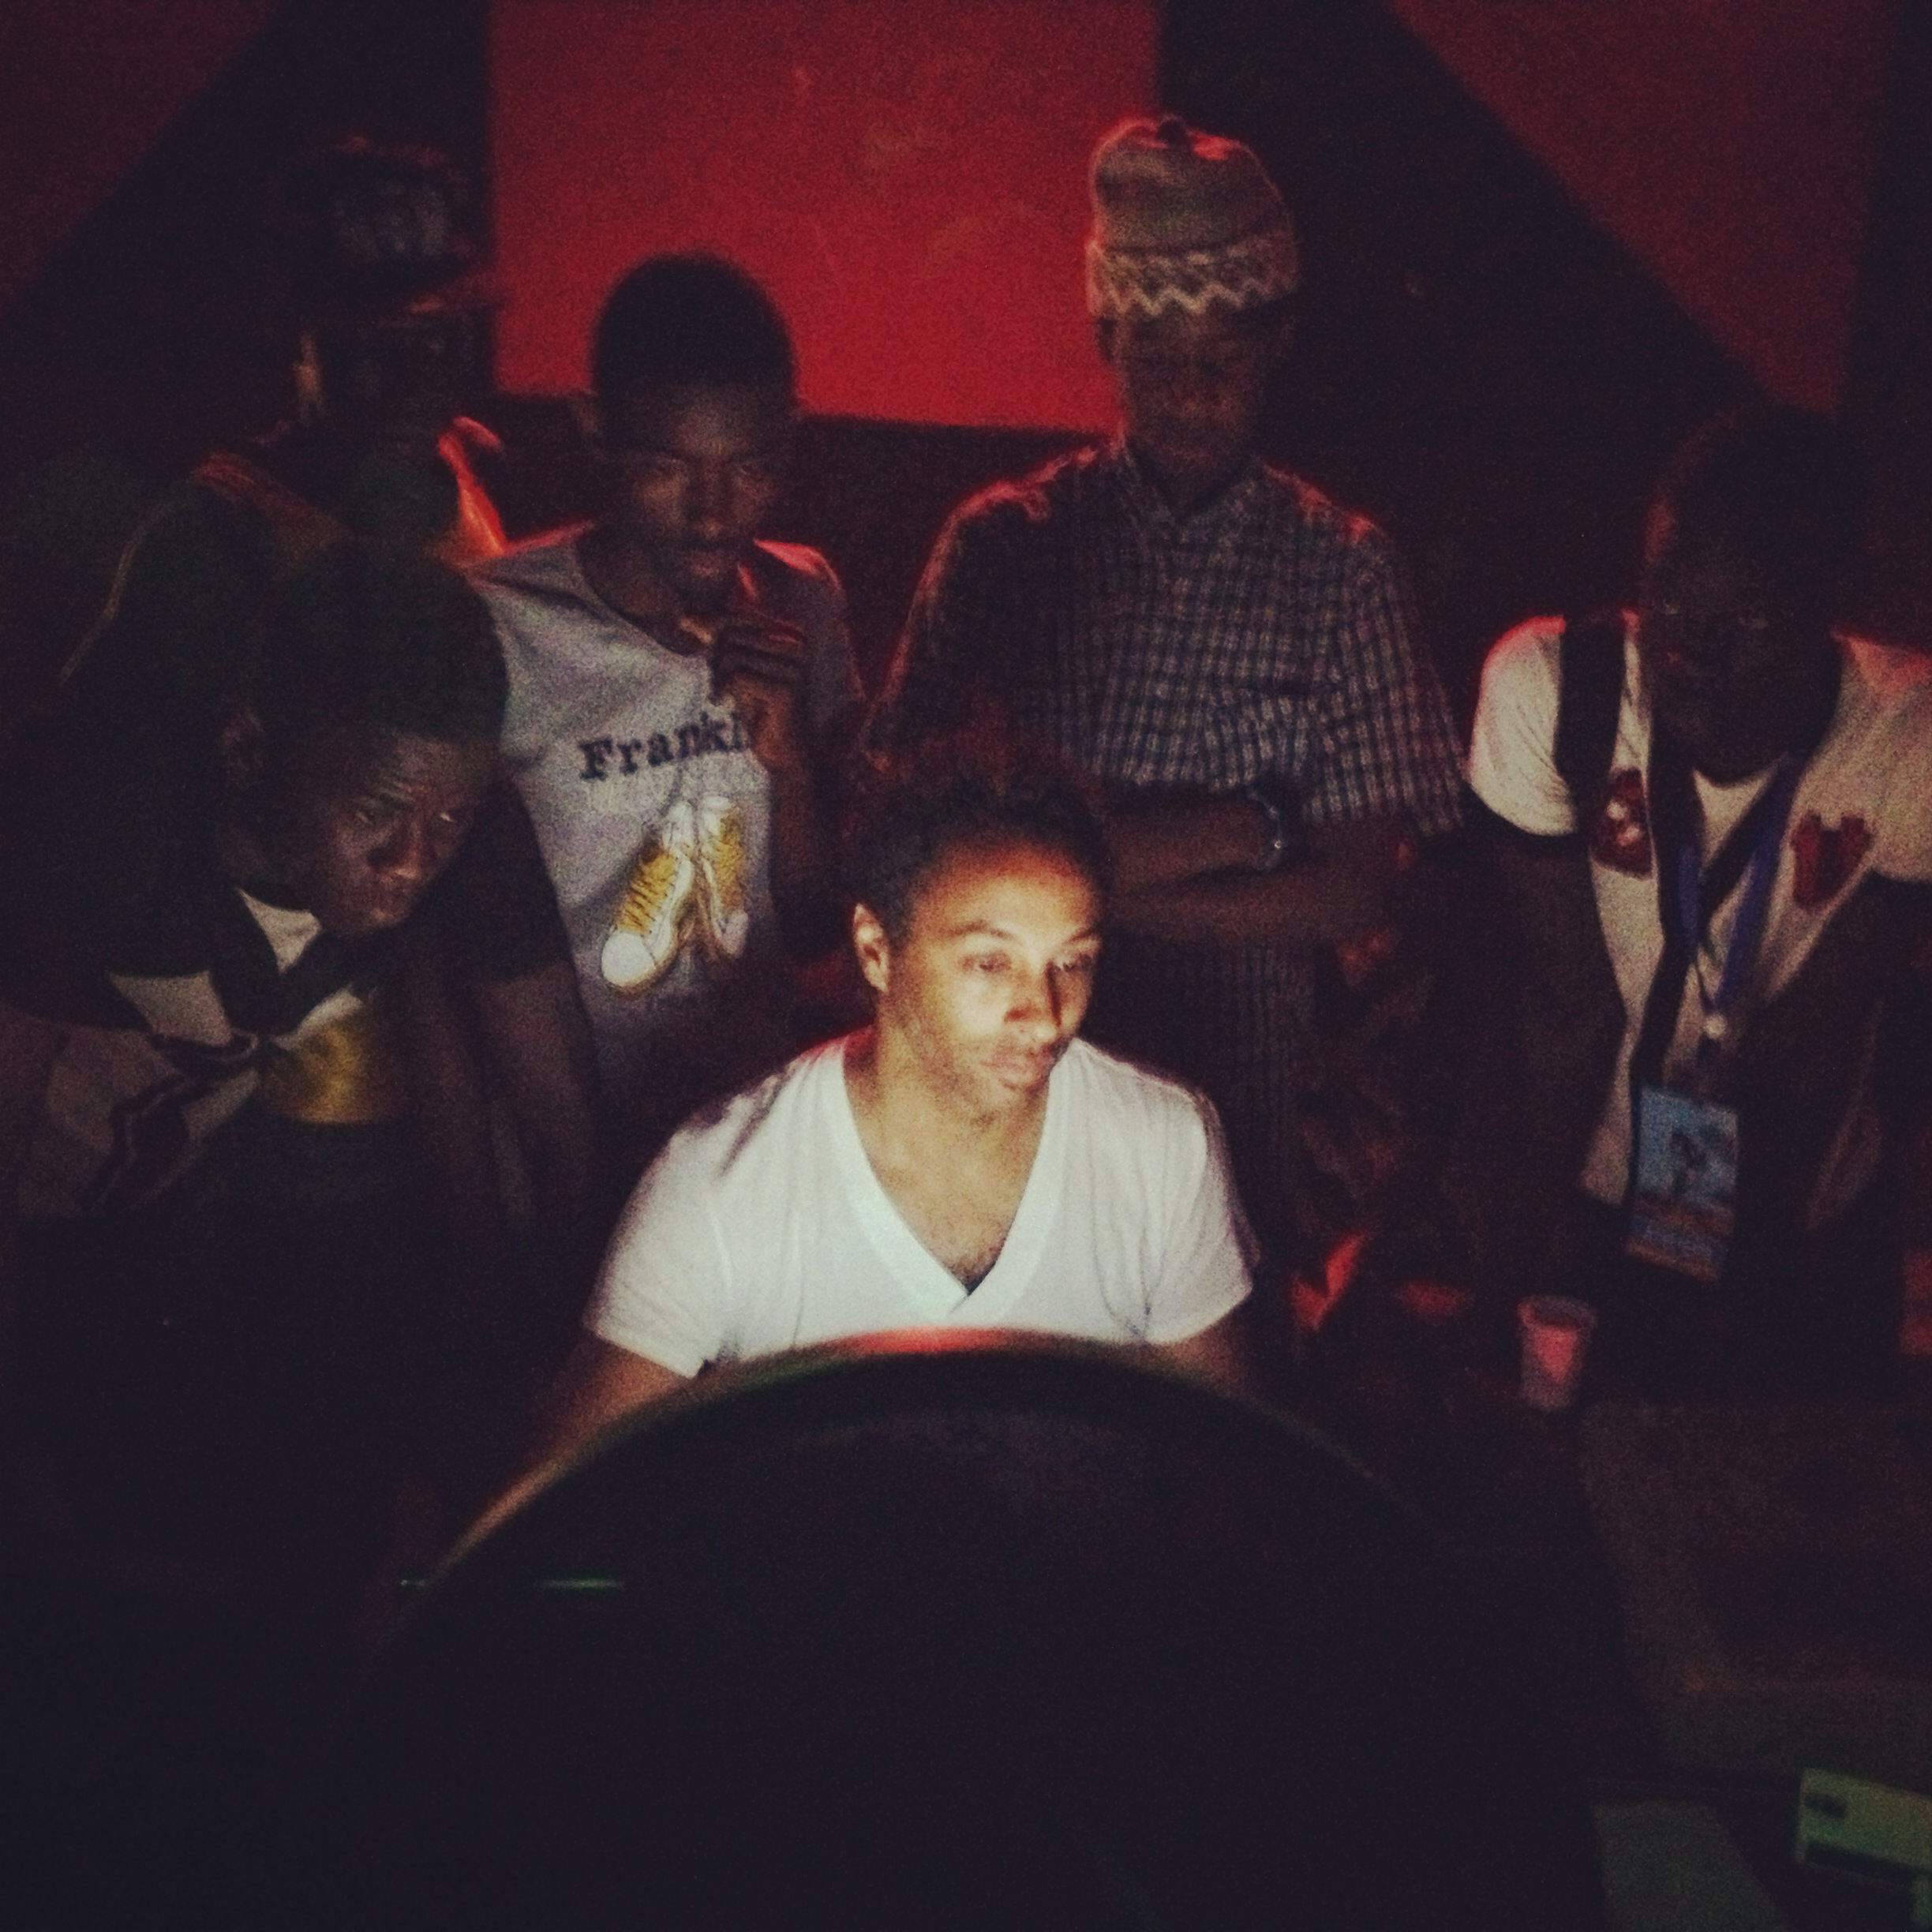 I was working in Mauritania with producers from Mali, Morocco, Senegal and more. The kids in the back were in awe about the software that was being used to record and produce music.